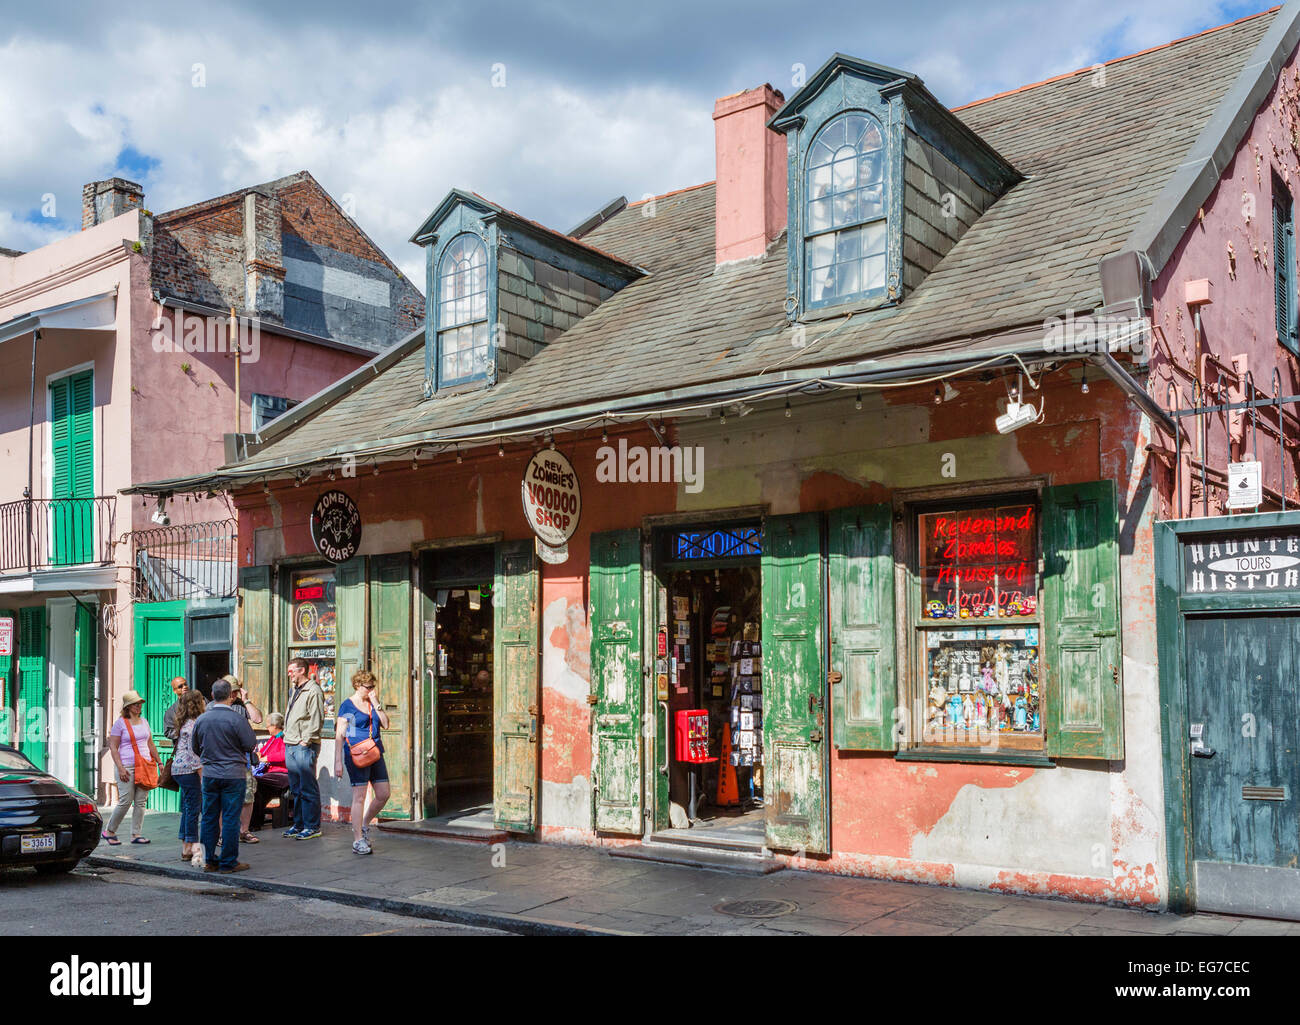 Reverend Zombie's House of Voodoo, St Peter Street, French Quarter, New Orleans, Louisiana, USA - Stock Image